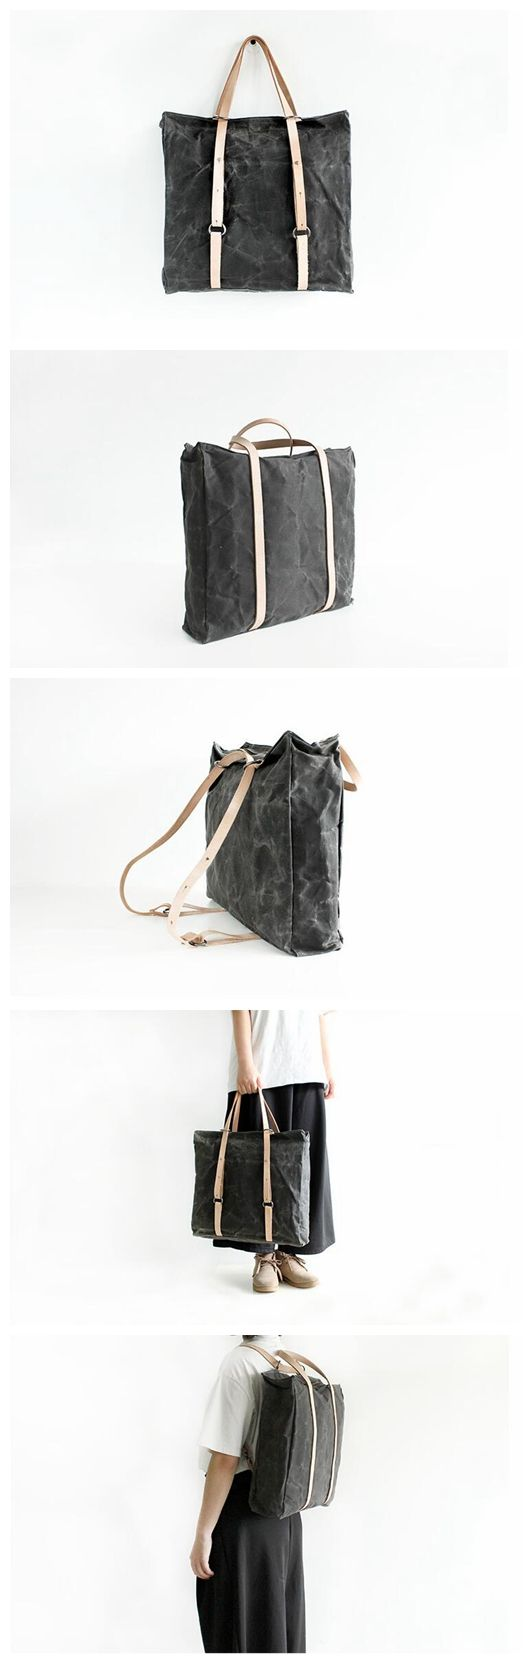 Canvas Tote Bag Leather Backpack Rucksack School Bag Handbag for Men & Women 14095 --------------------------------- - 16oz waxed canvas - Cotton lining - Inside one zipper pocket, one phone pocket, o